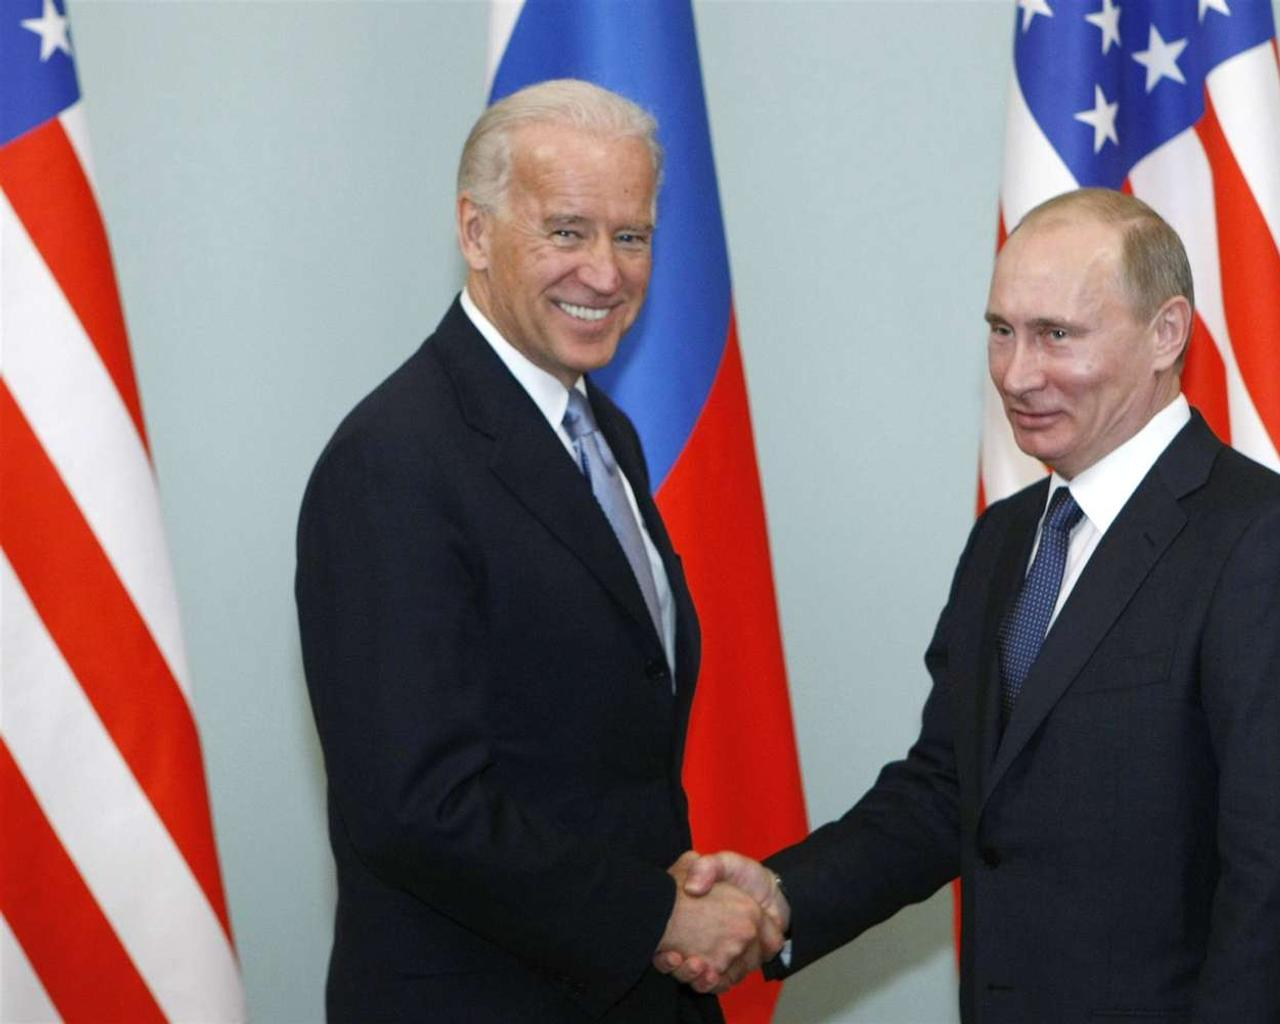 Biden proposes meeting Putin 'in a third country' amid Ukraine tensions